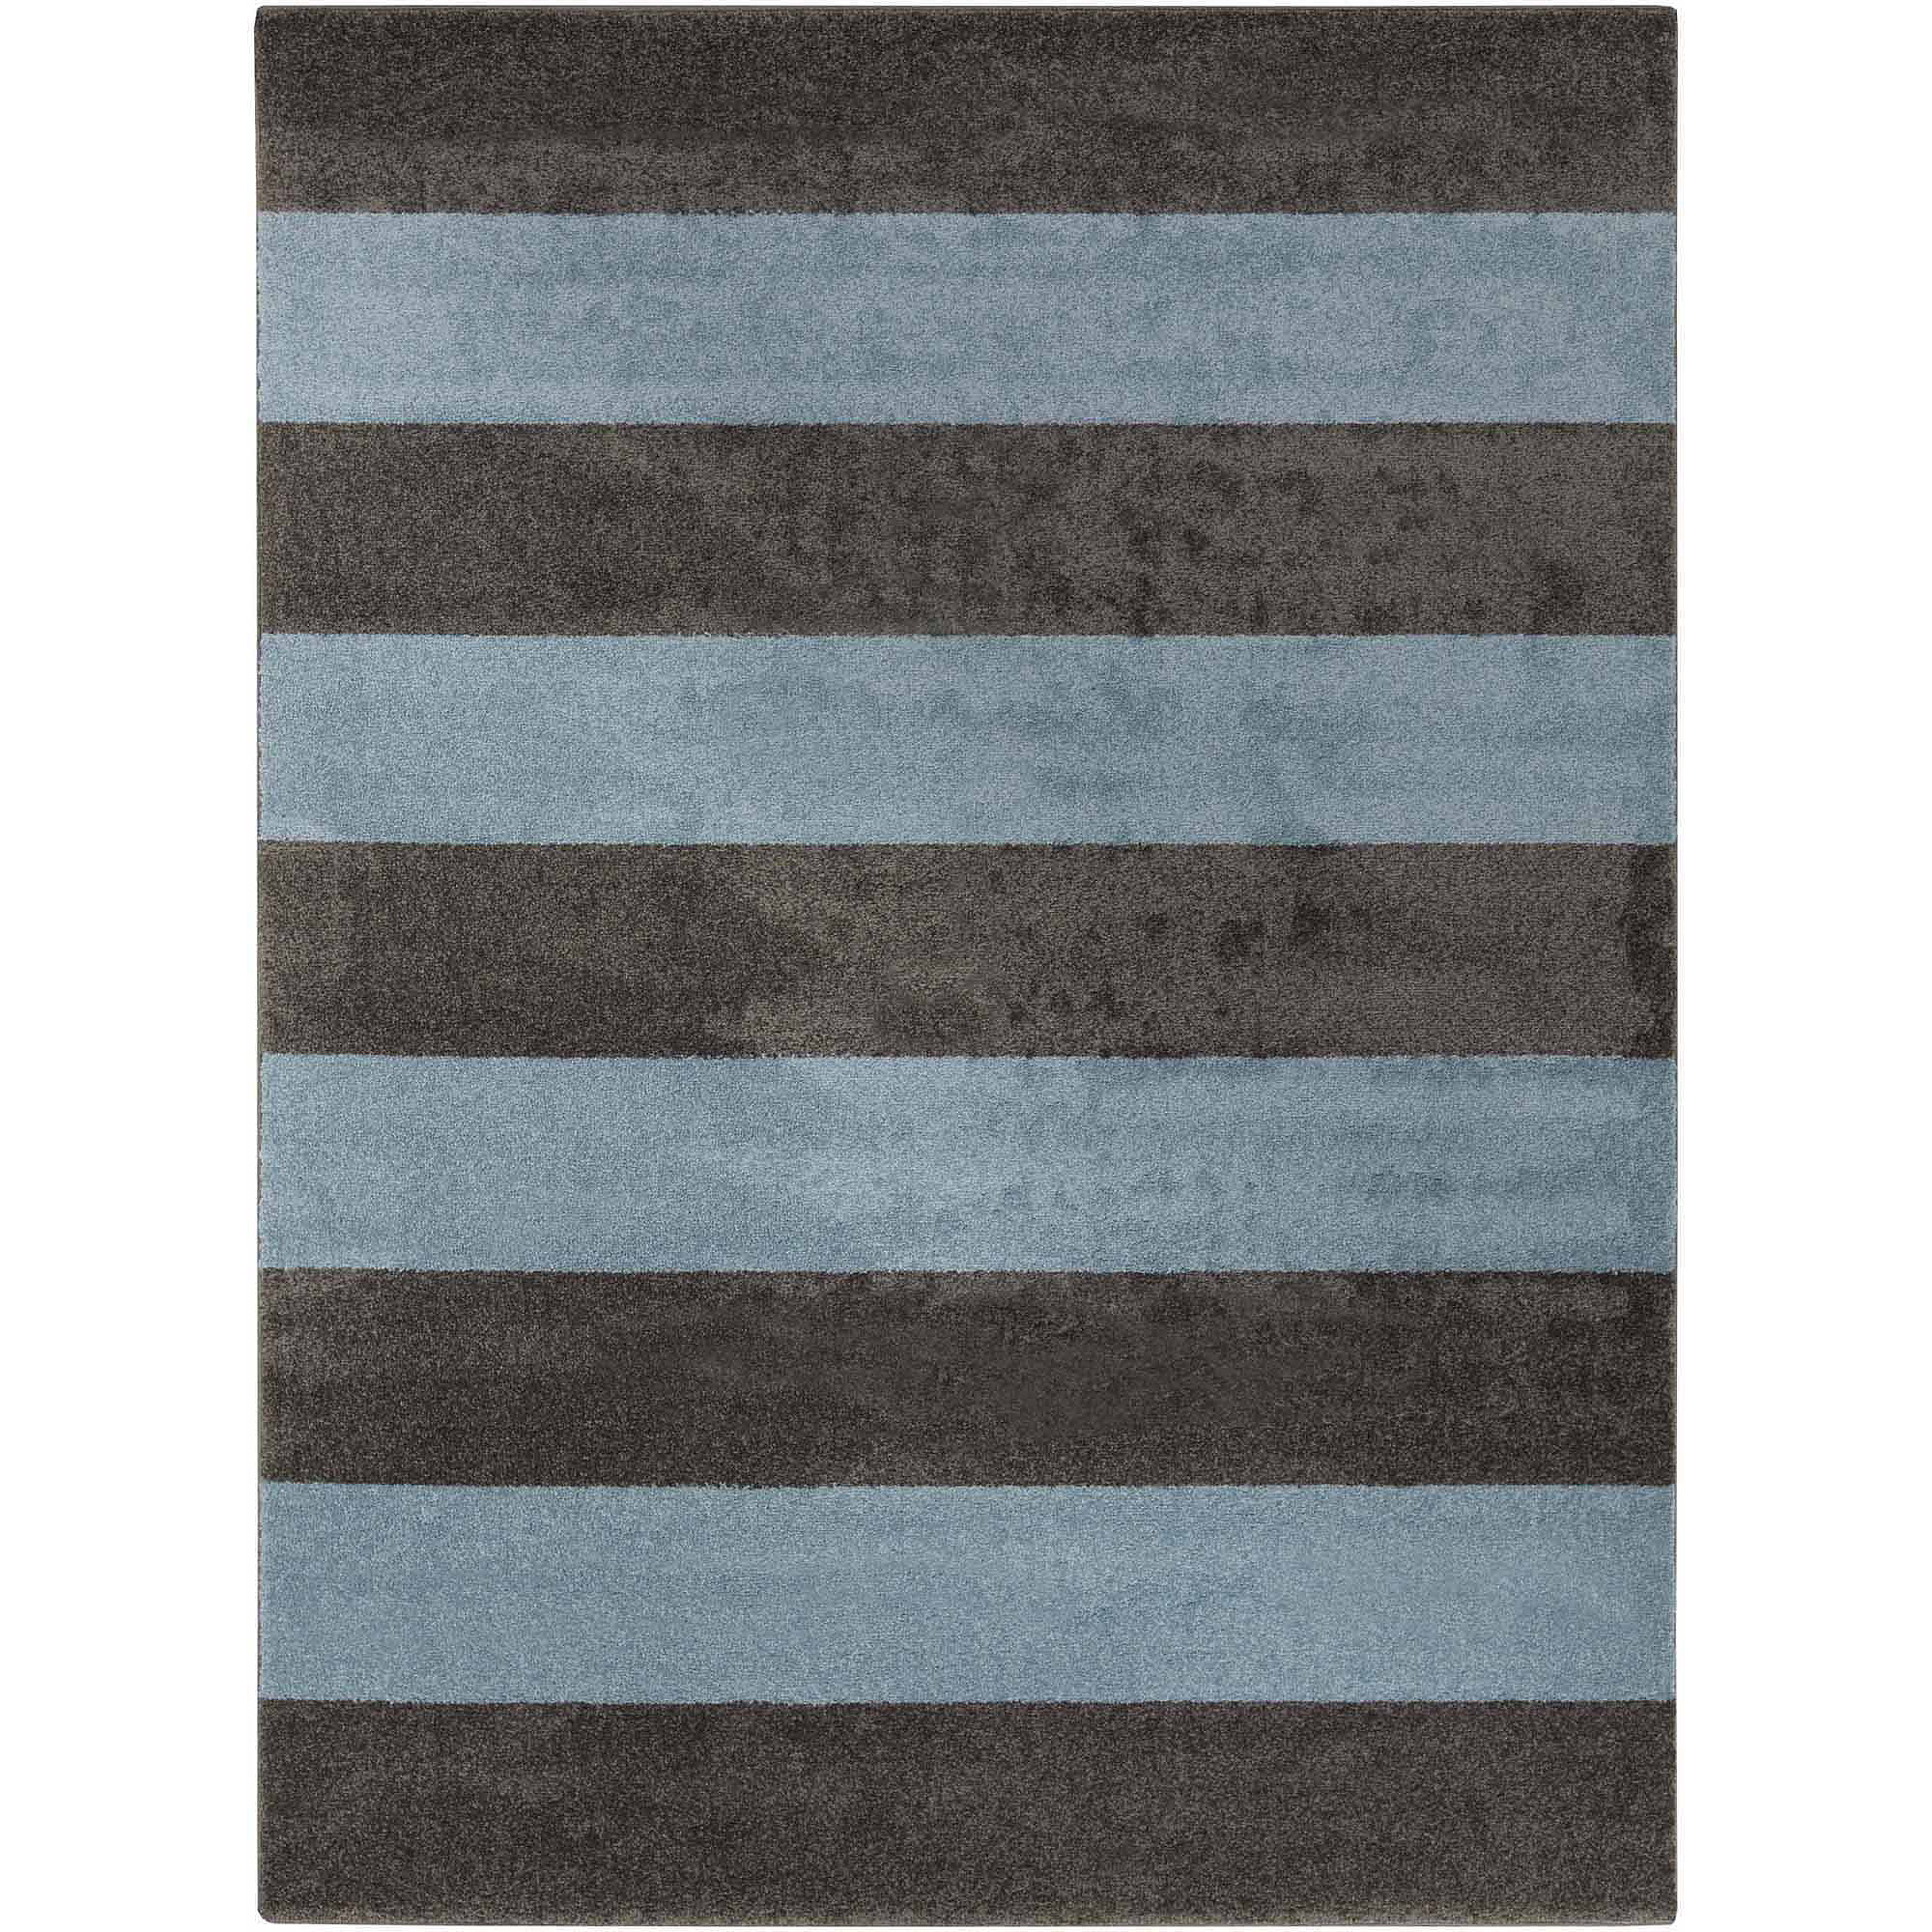 apartment AH Napa Machine Made Geometric Area Rug, Blue